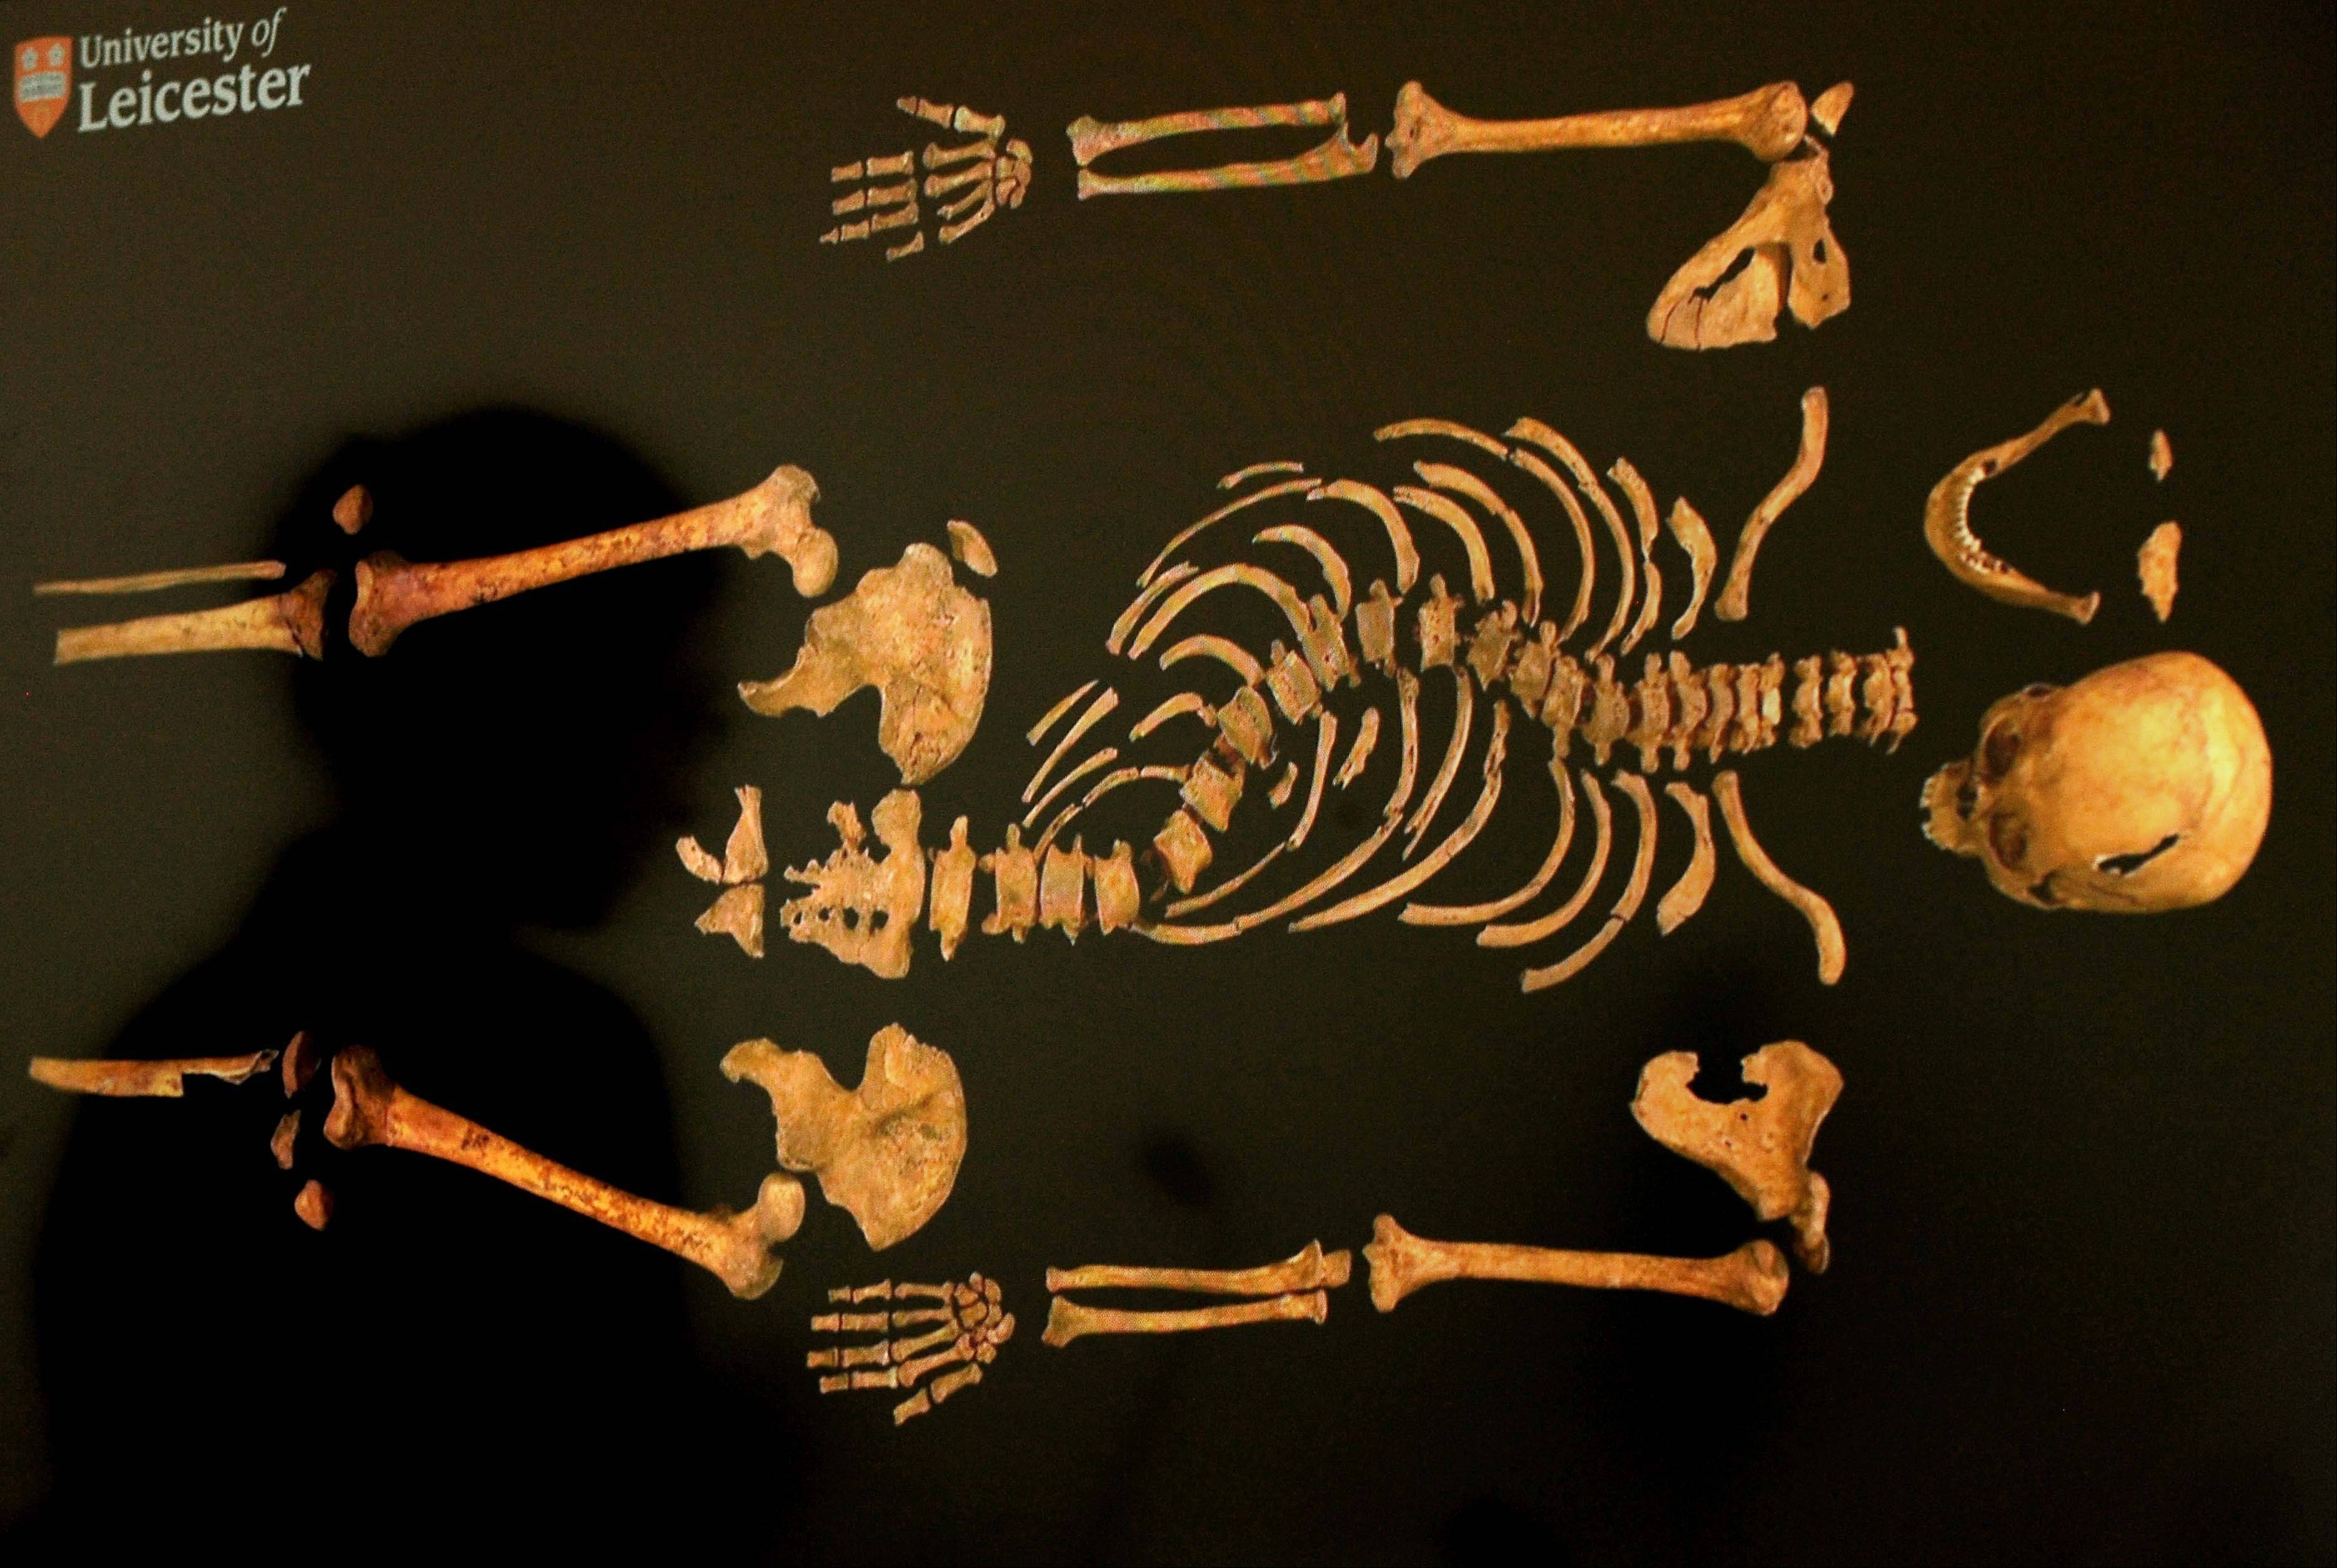 A view of the skeleton of England's King Richard III. A British High Court judge on Friday Aug. 16, 2013 granted a group of Richard's relatives the right to challenge plans to rebury the 15th-century monarch in the city of Leicester, where his remains were found last year.